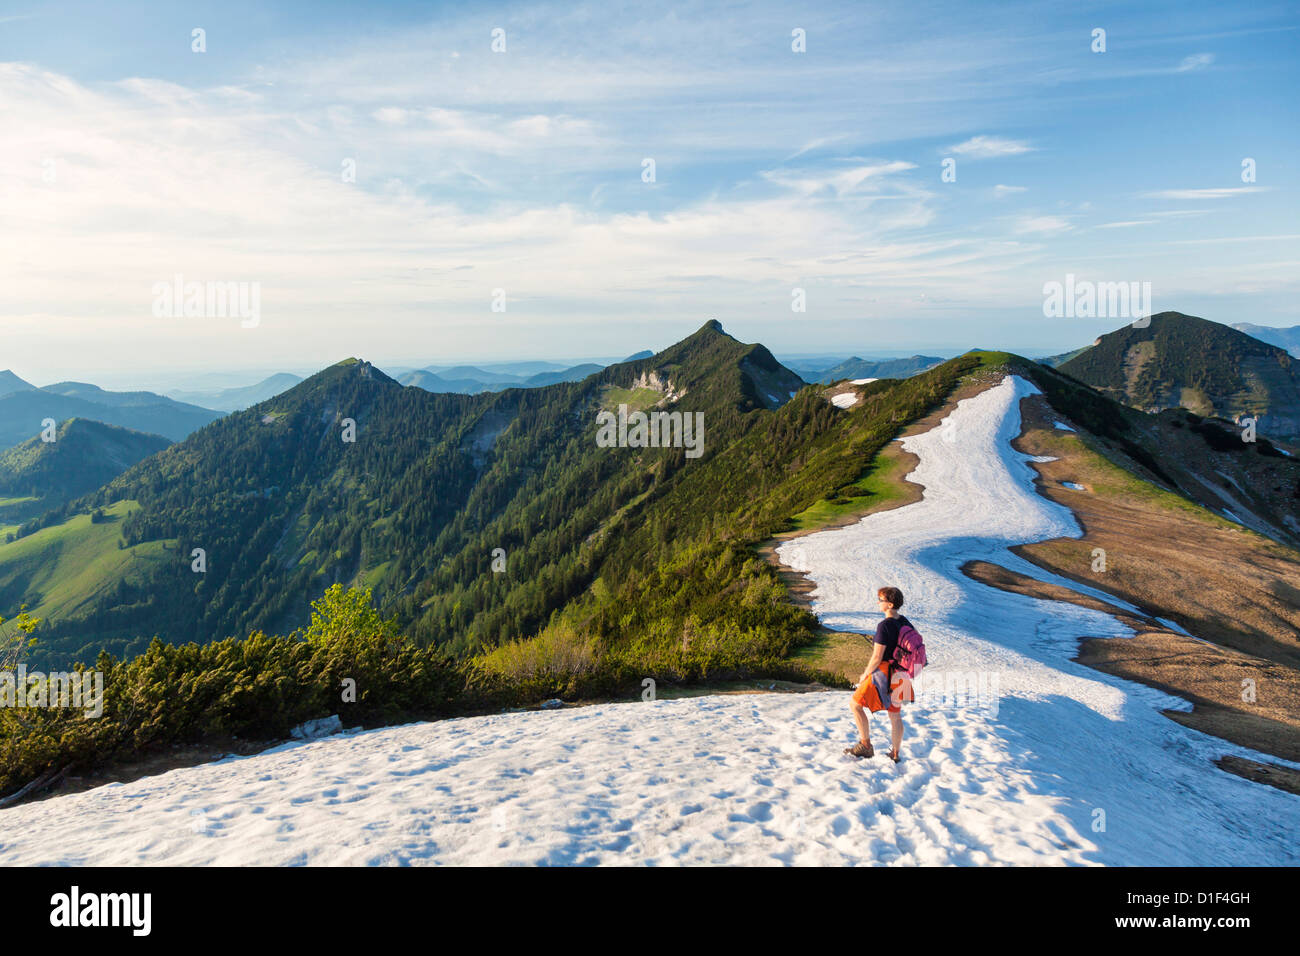 Woman on snowfield in the Osterhorn Group, Salzkammergut Mountains, Austria - Stock Image